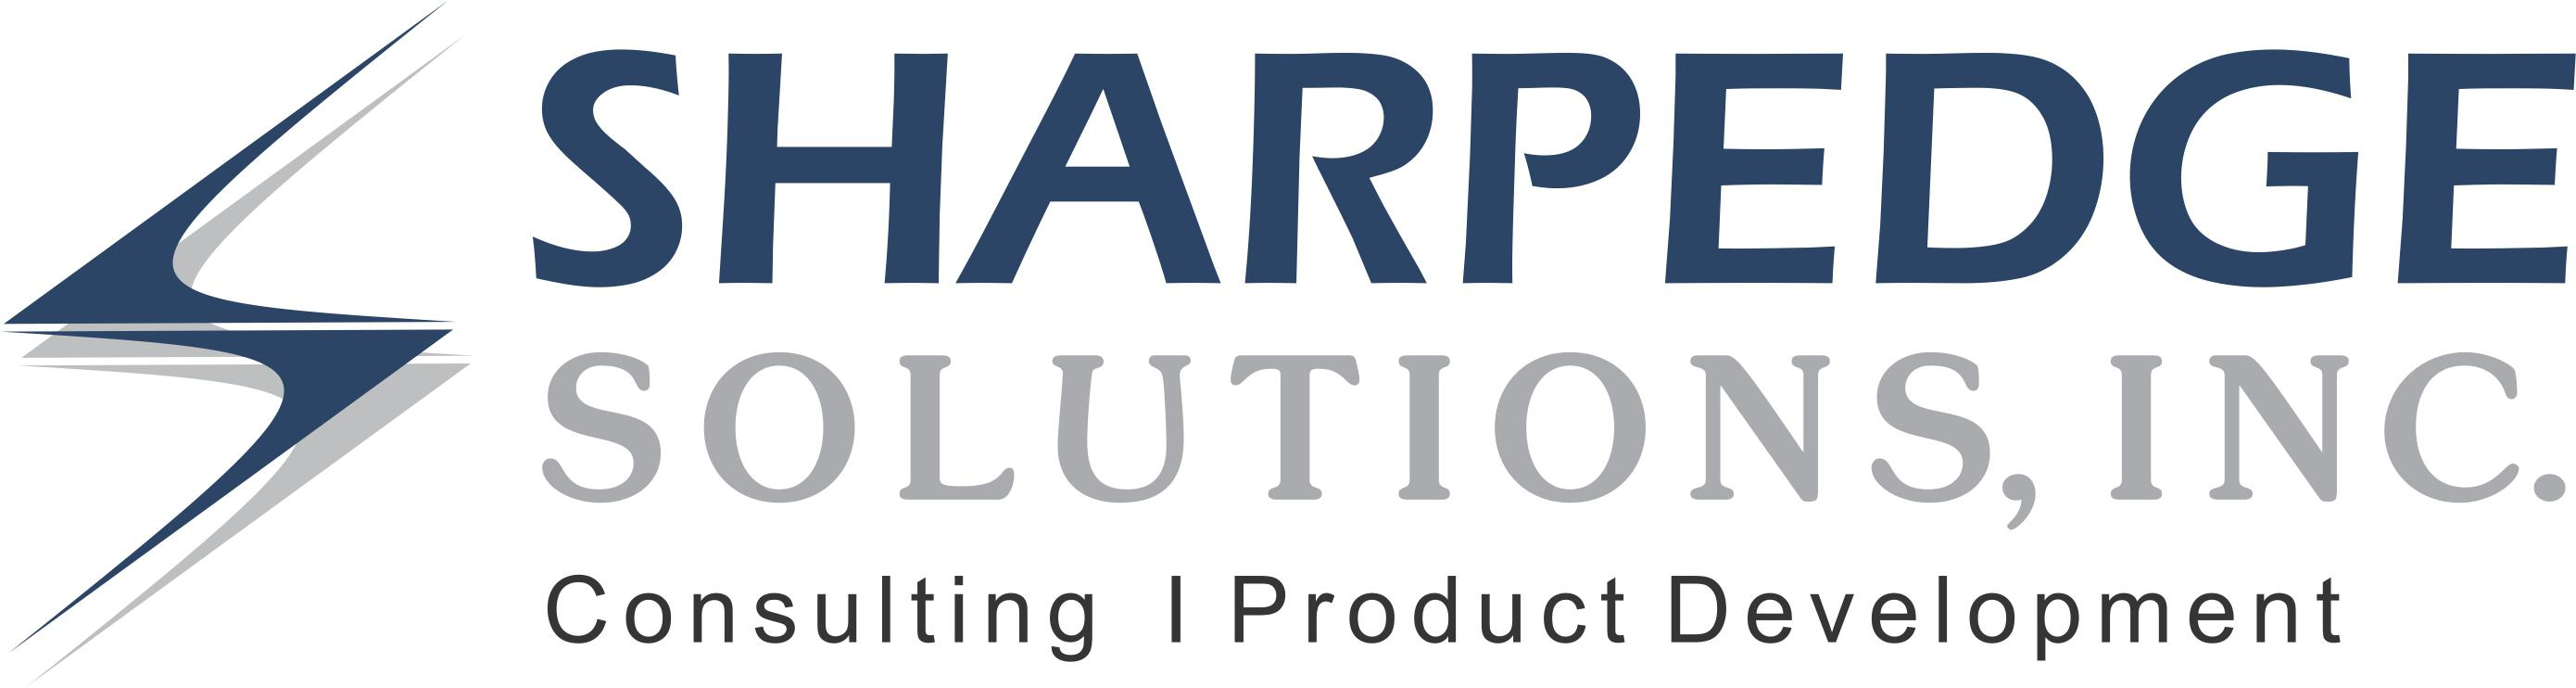 Sharpedge Solutions Inc.